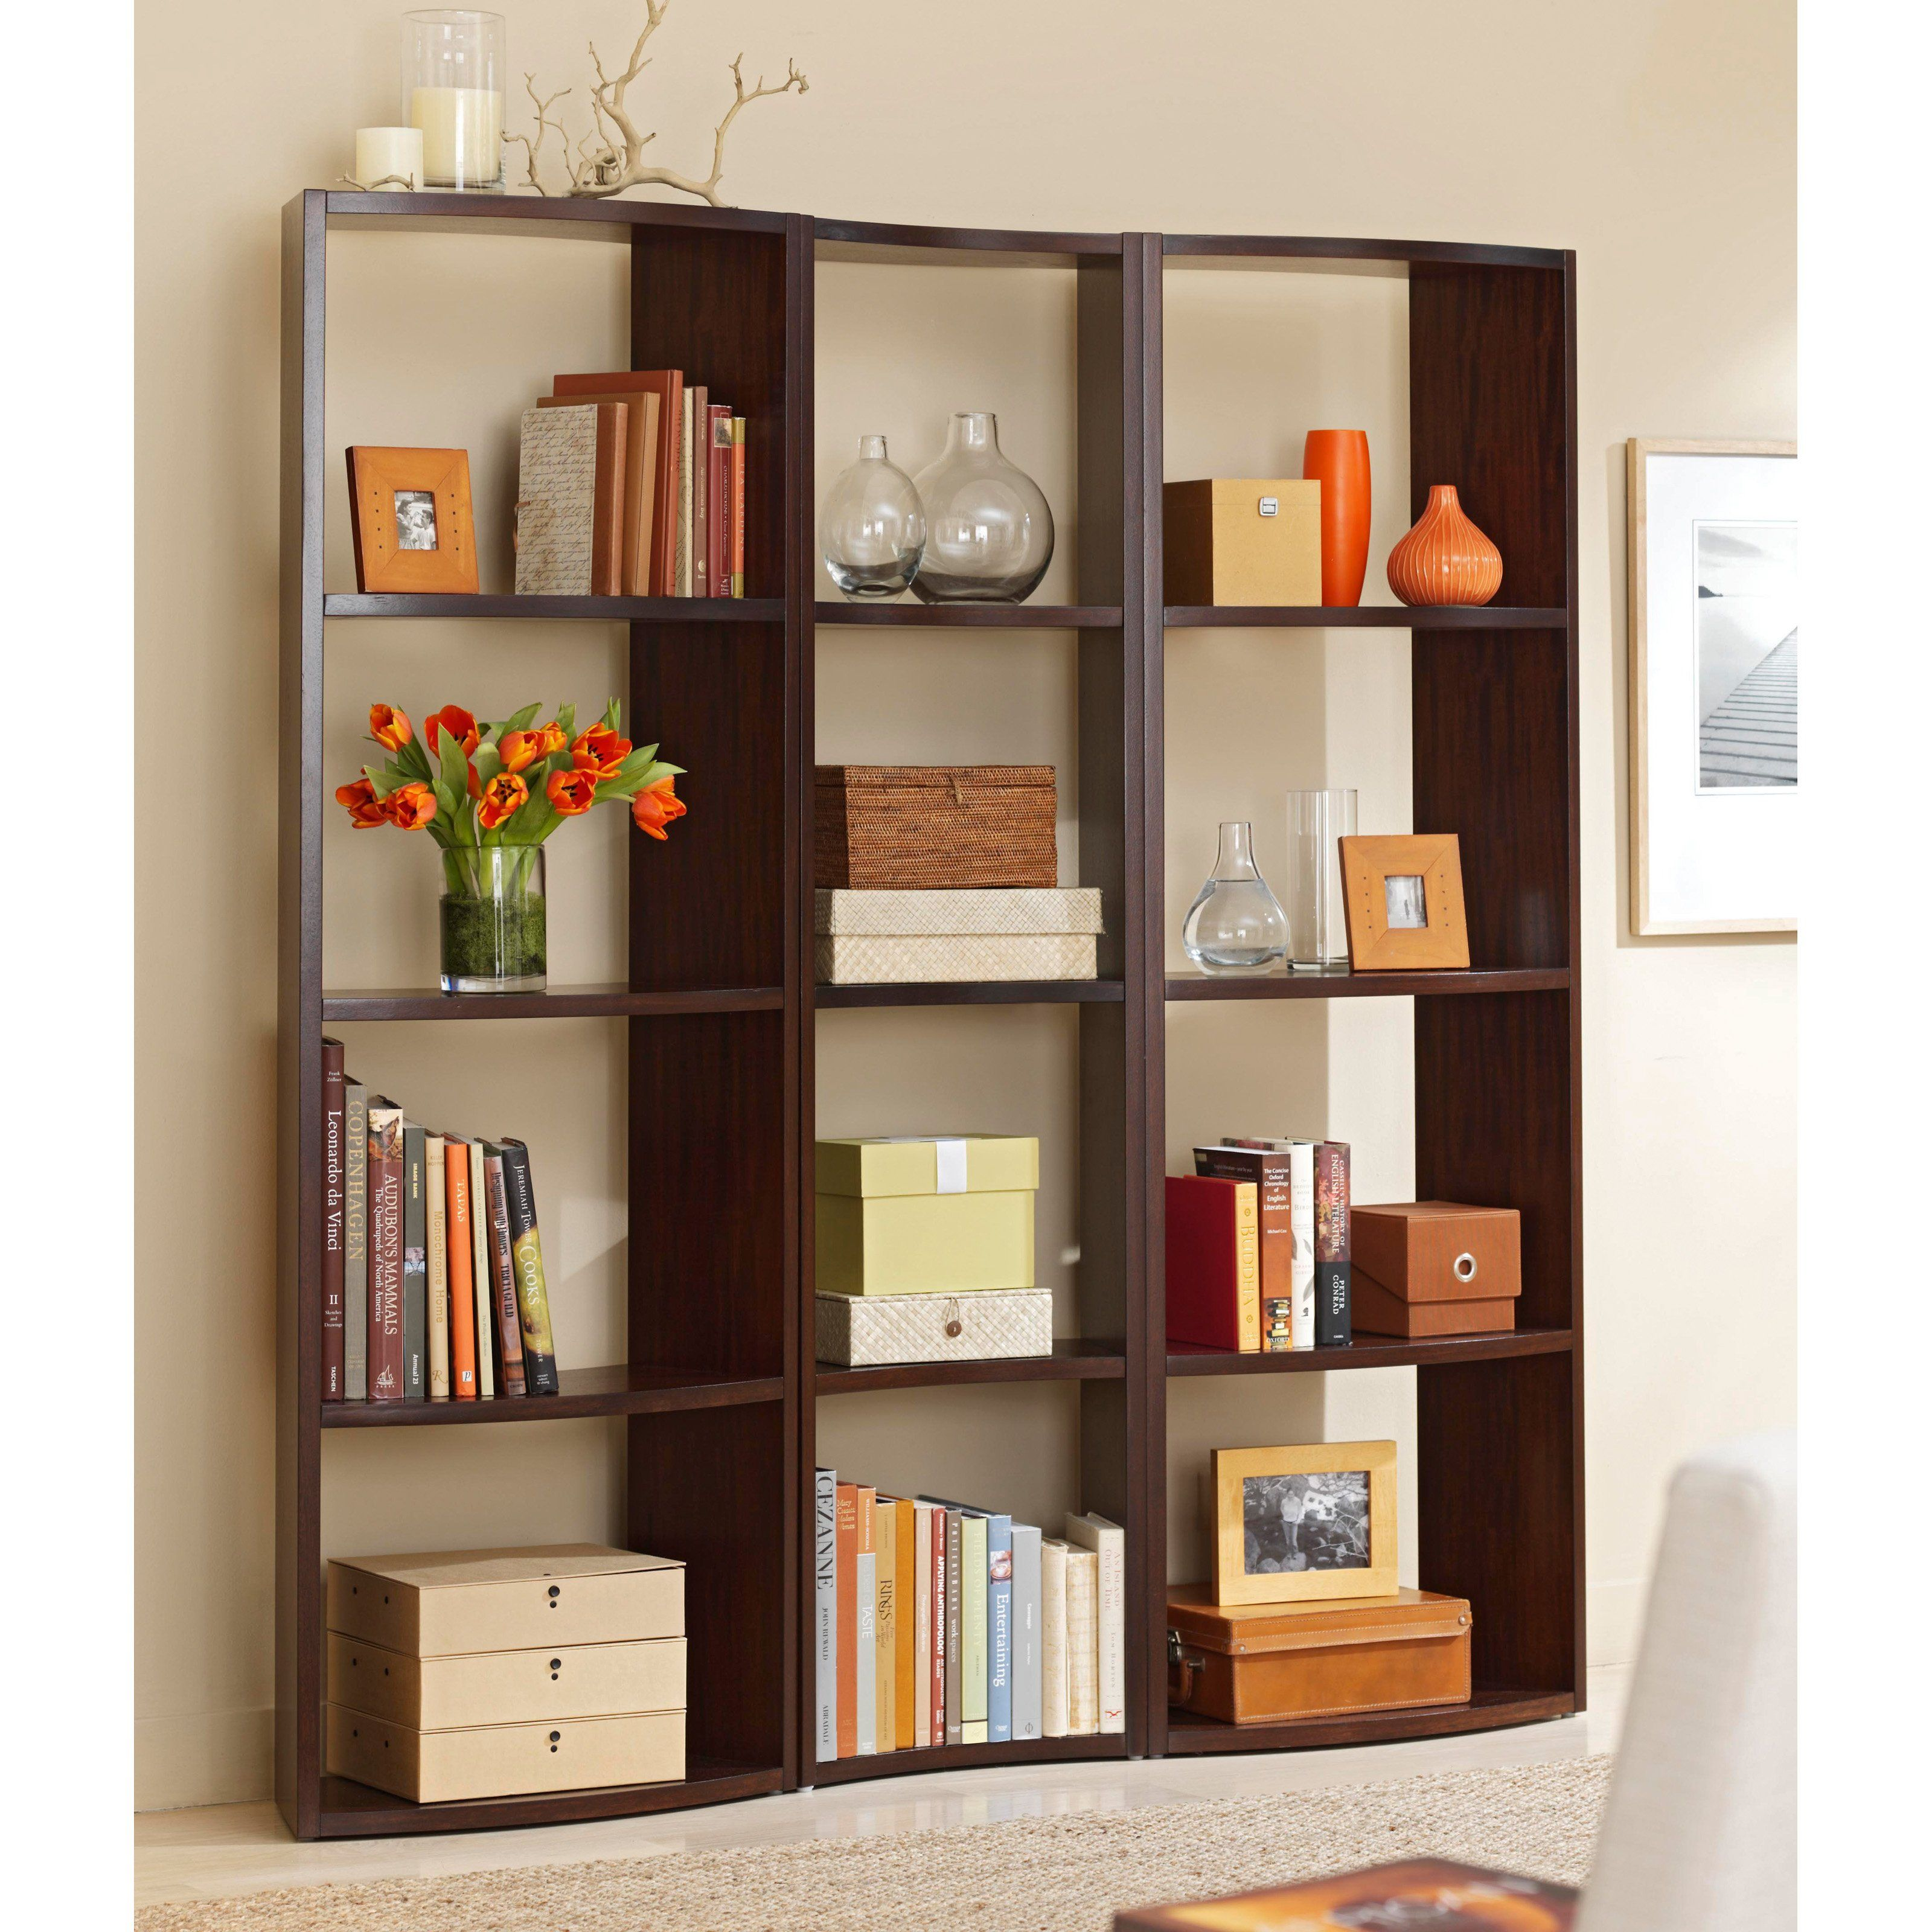 bookshelf divider products fields bookcase by room designs phoenix asymmetric white container fortuna